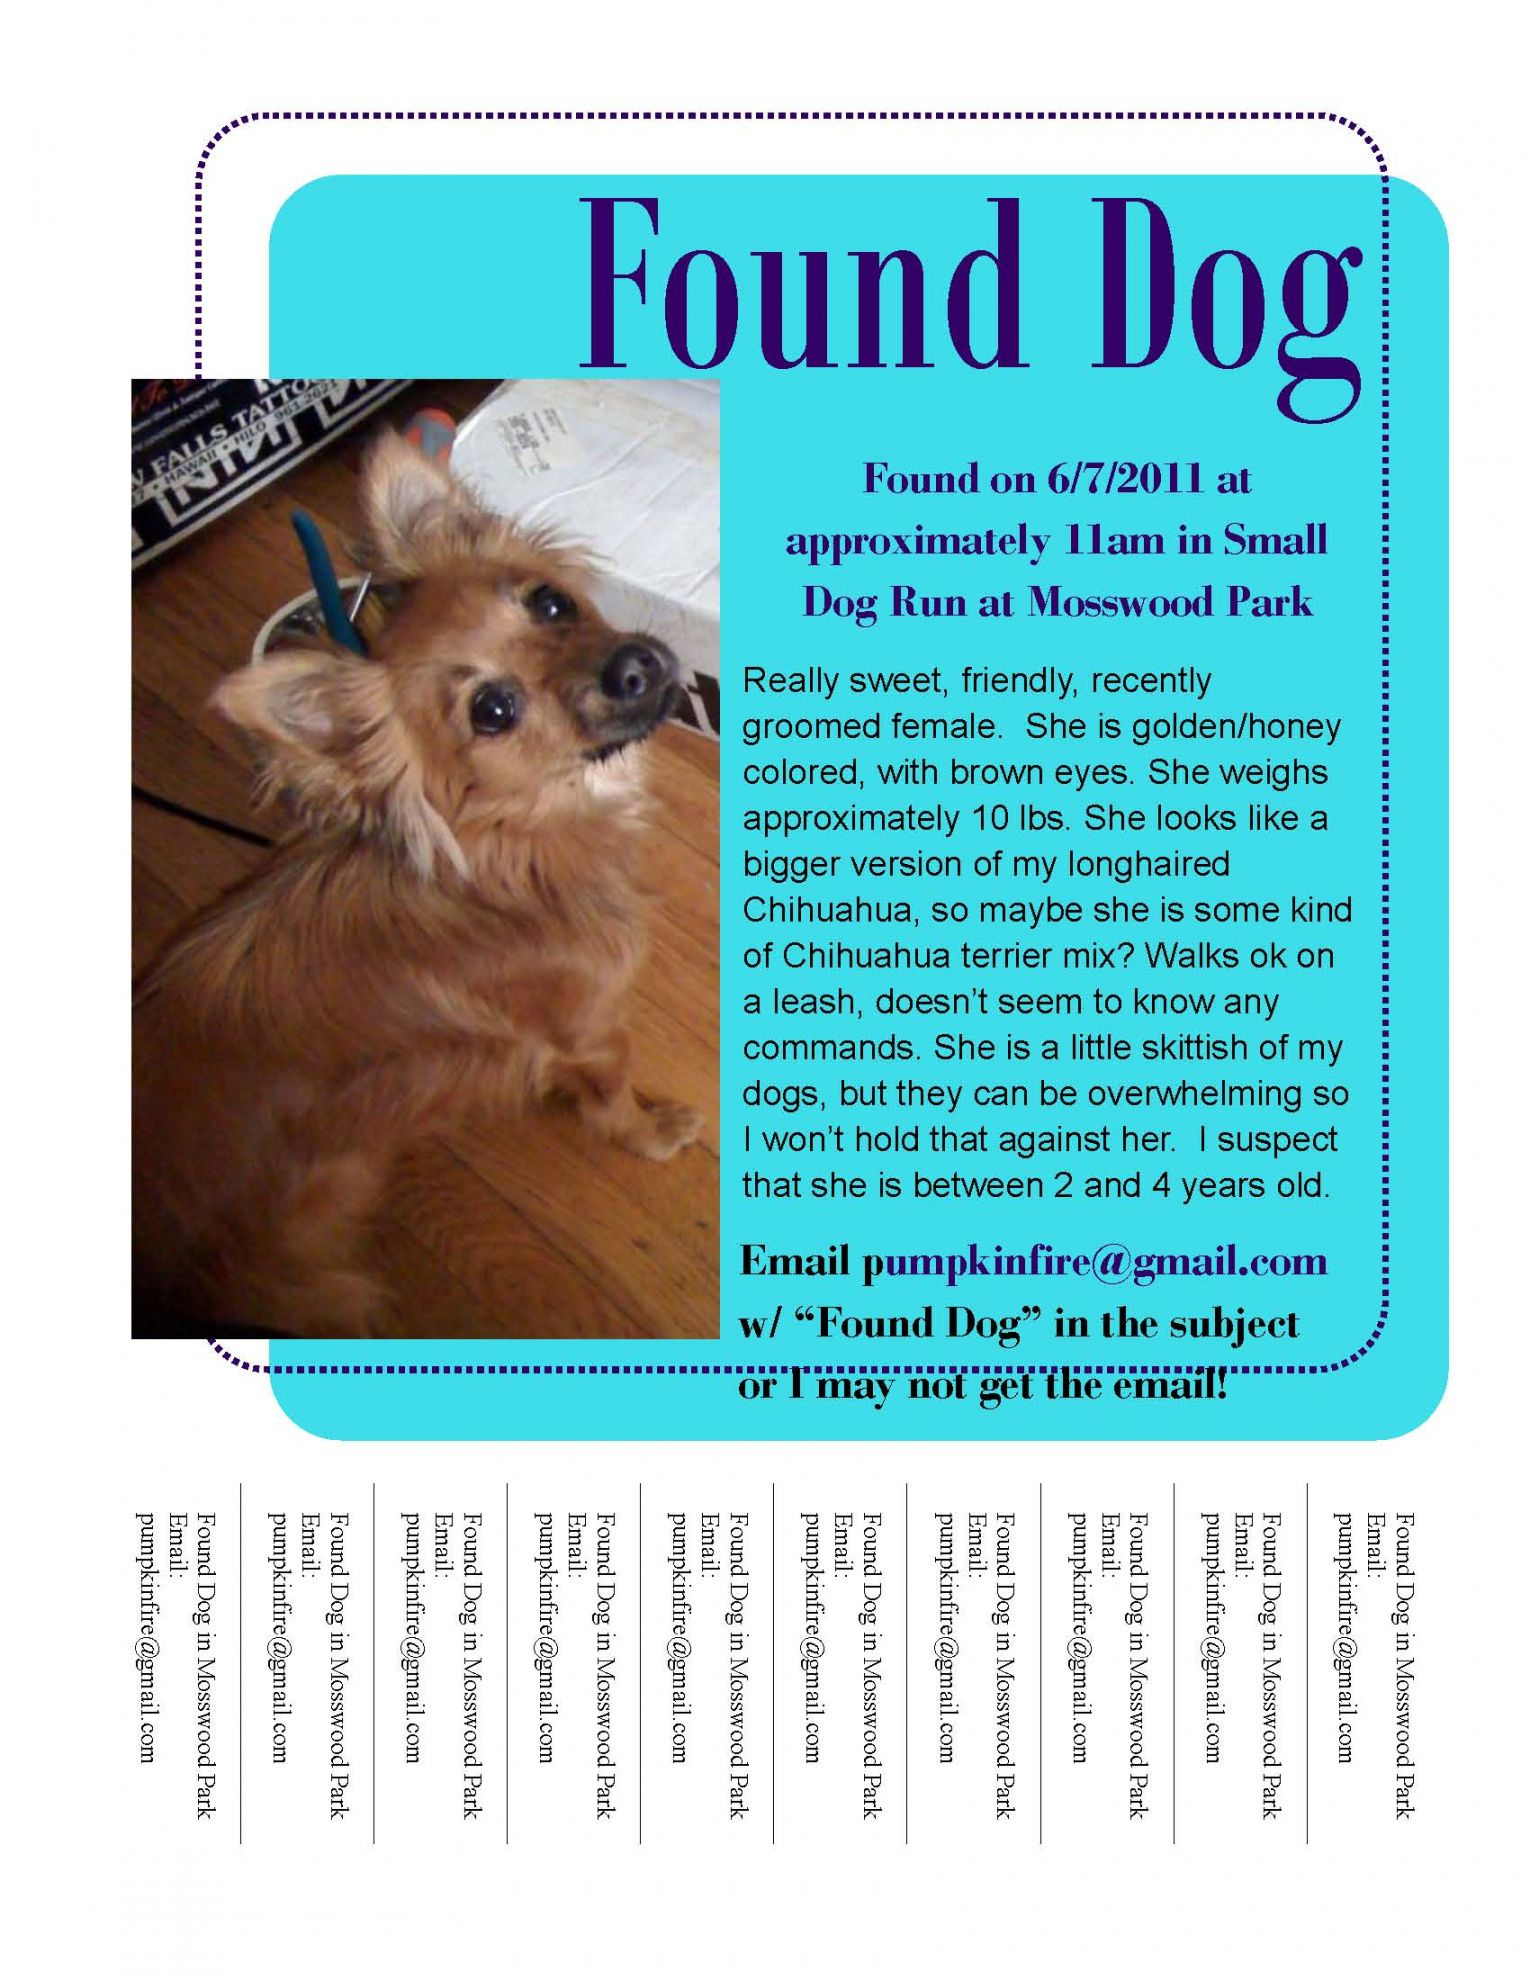 free found dog  lounge lassies' world found dog flyer template